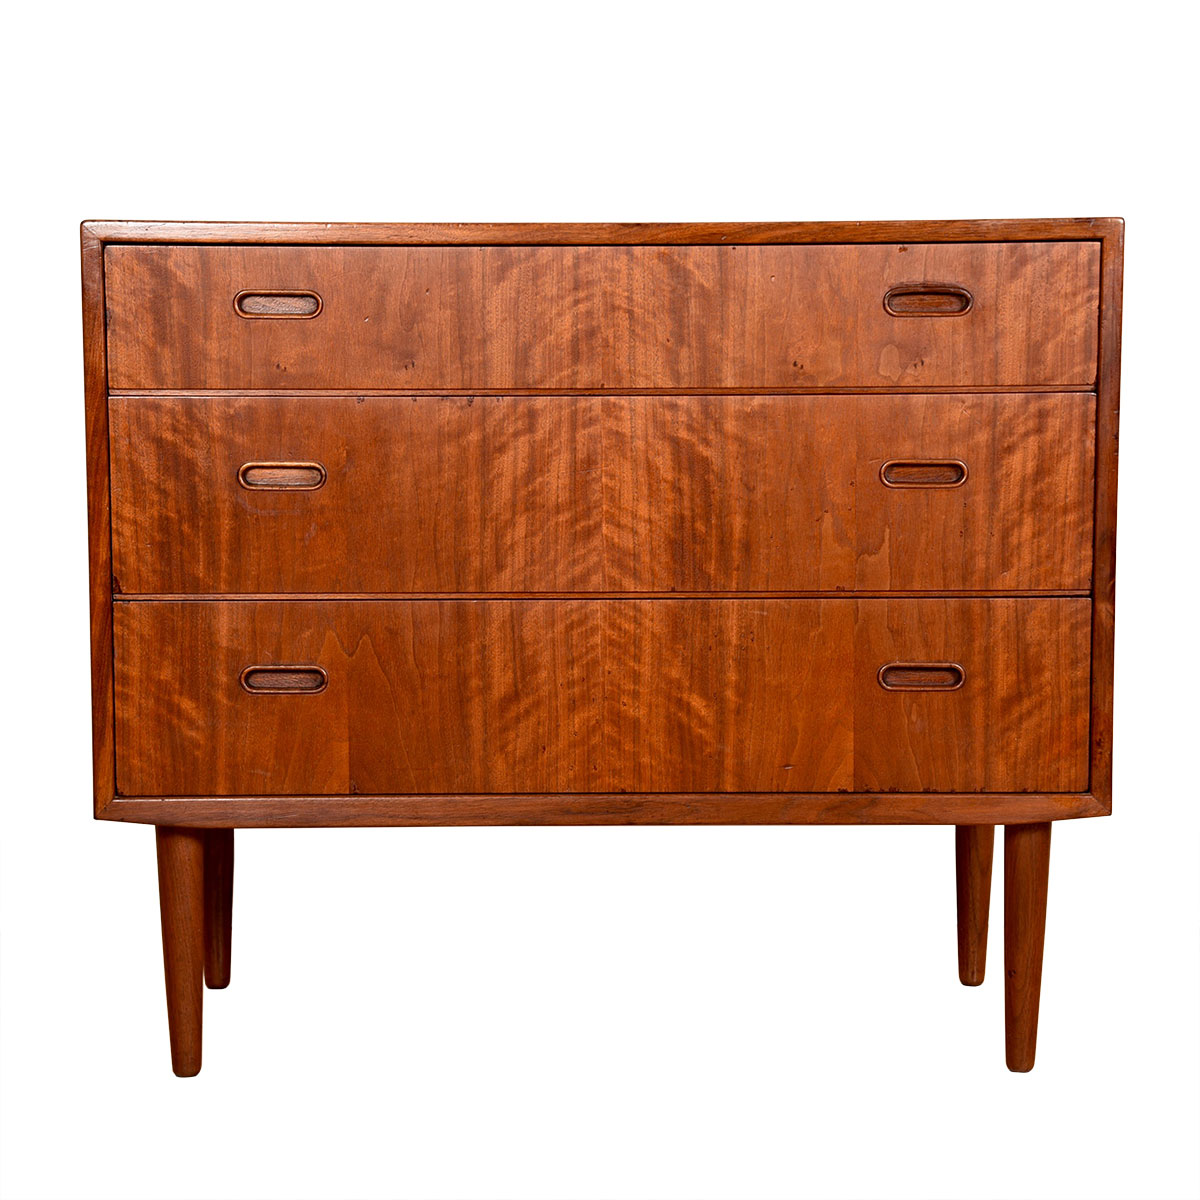 Danish Modern Compact Teak 3 Drawer Chest / Dresser